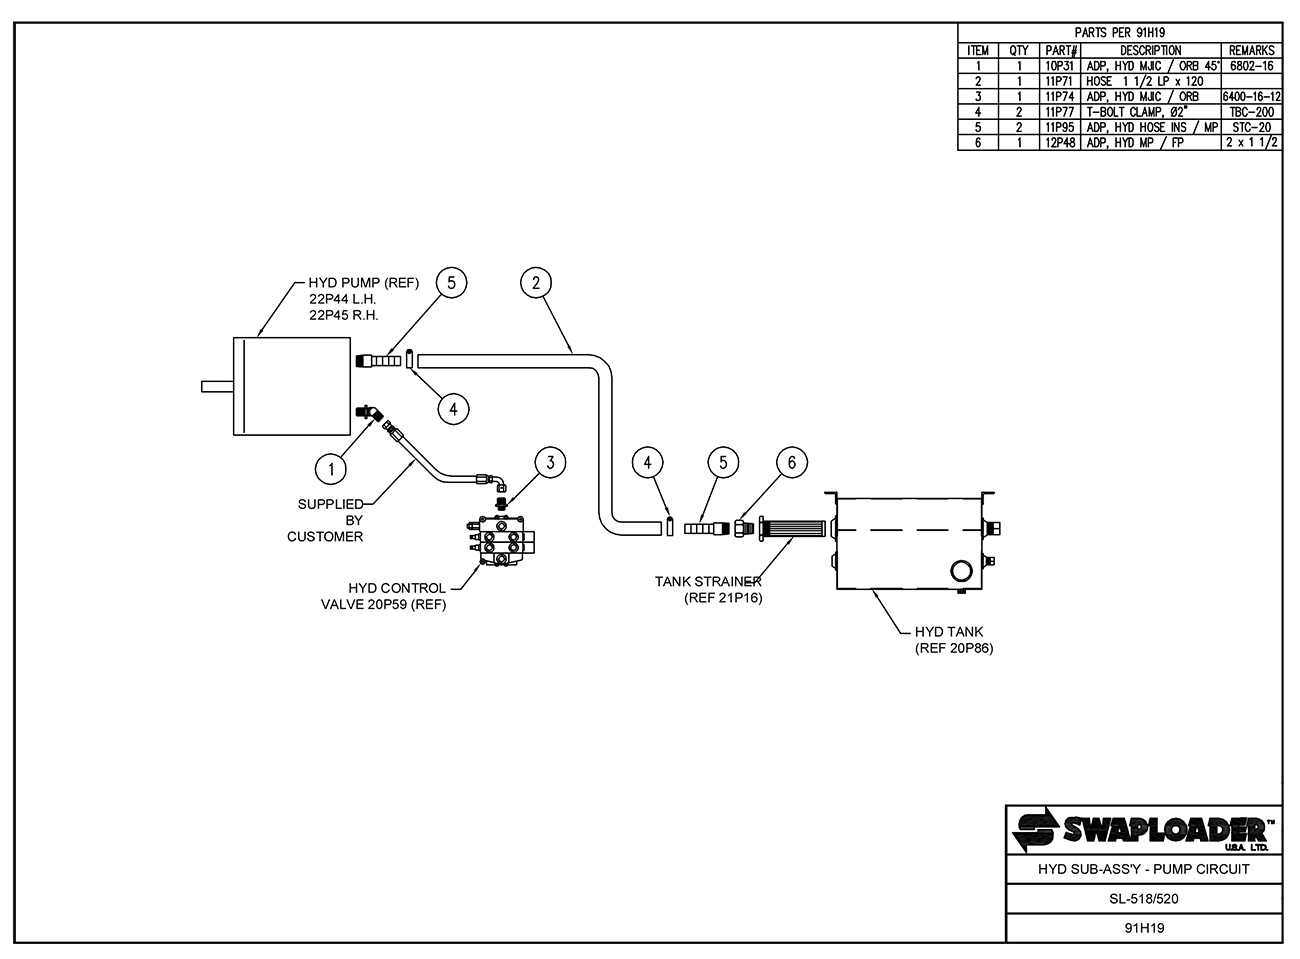 Swaploader Heavy Duty Series Sl 518 Hooklift Diagrams Mc 44 Multi Function Microphone Schematic Wiring Diagram 520 Hydraulic Sub Assembly Pump Circuit